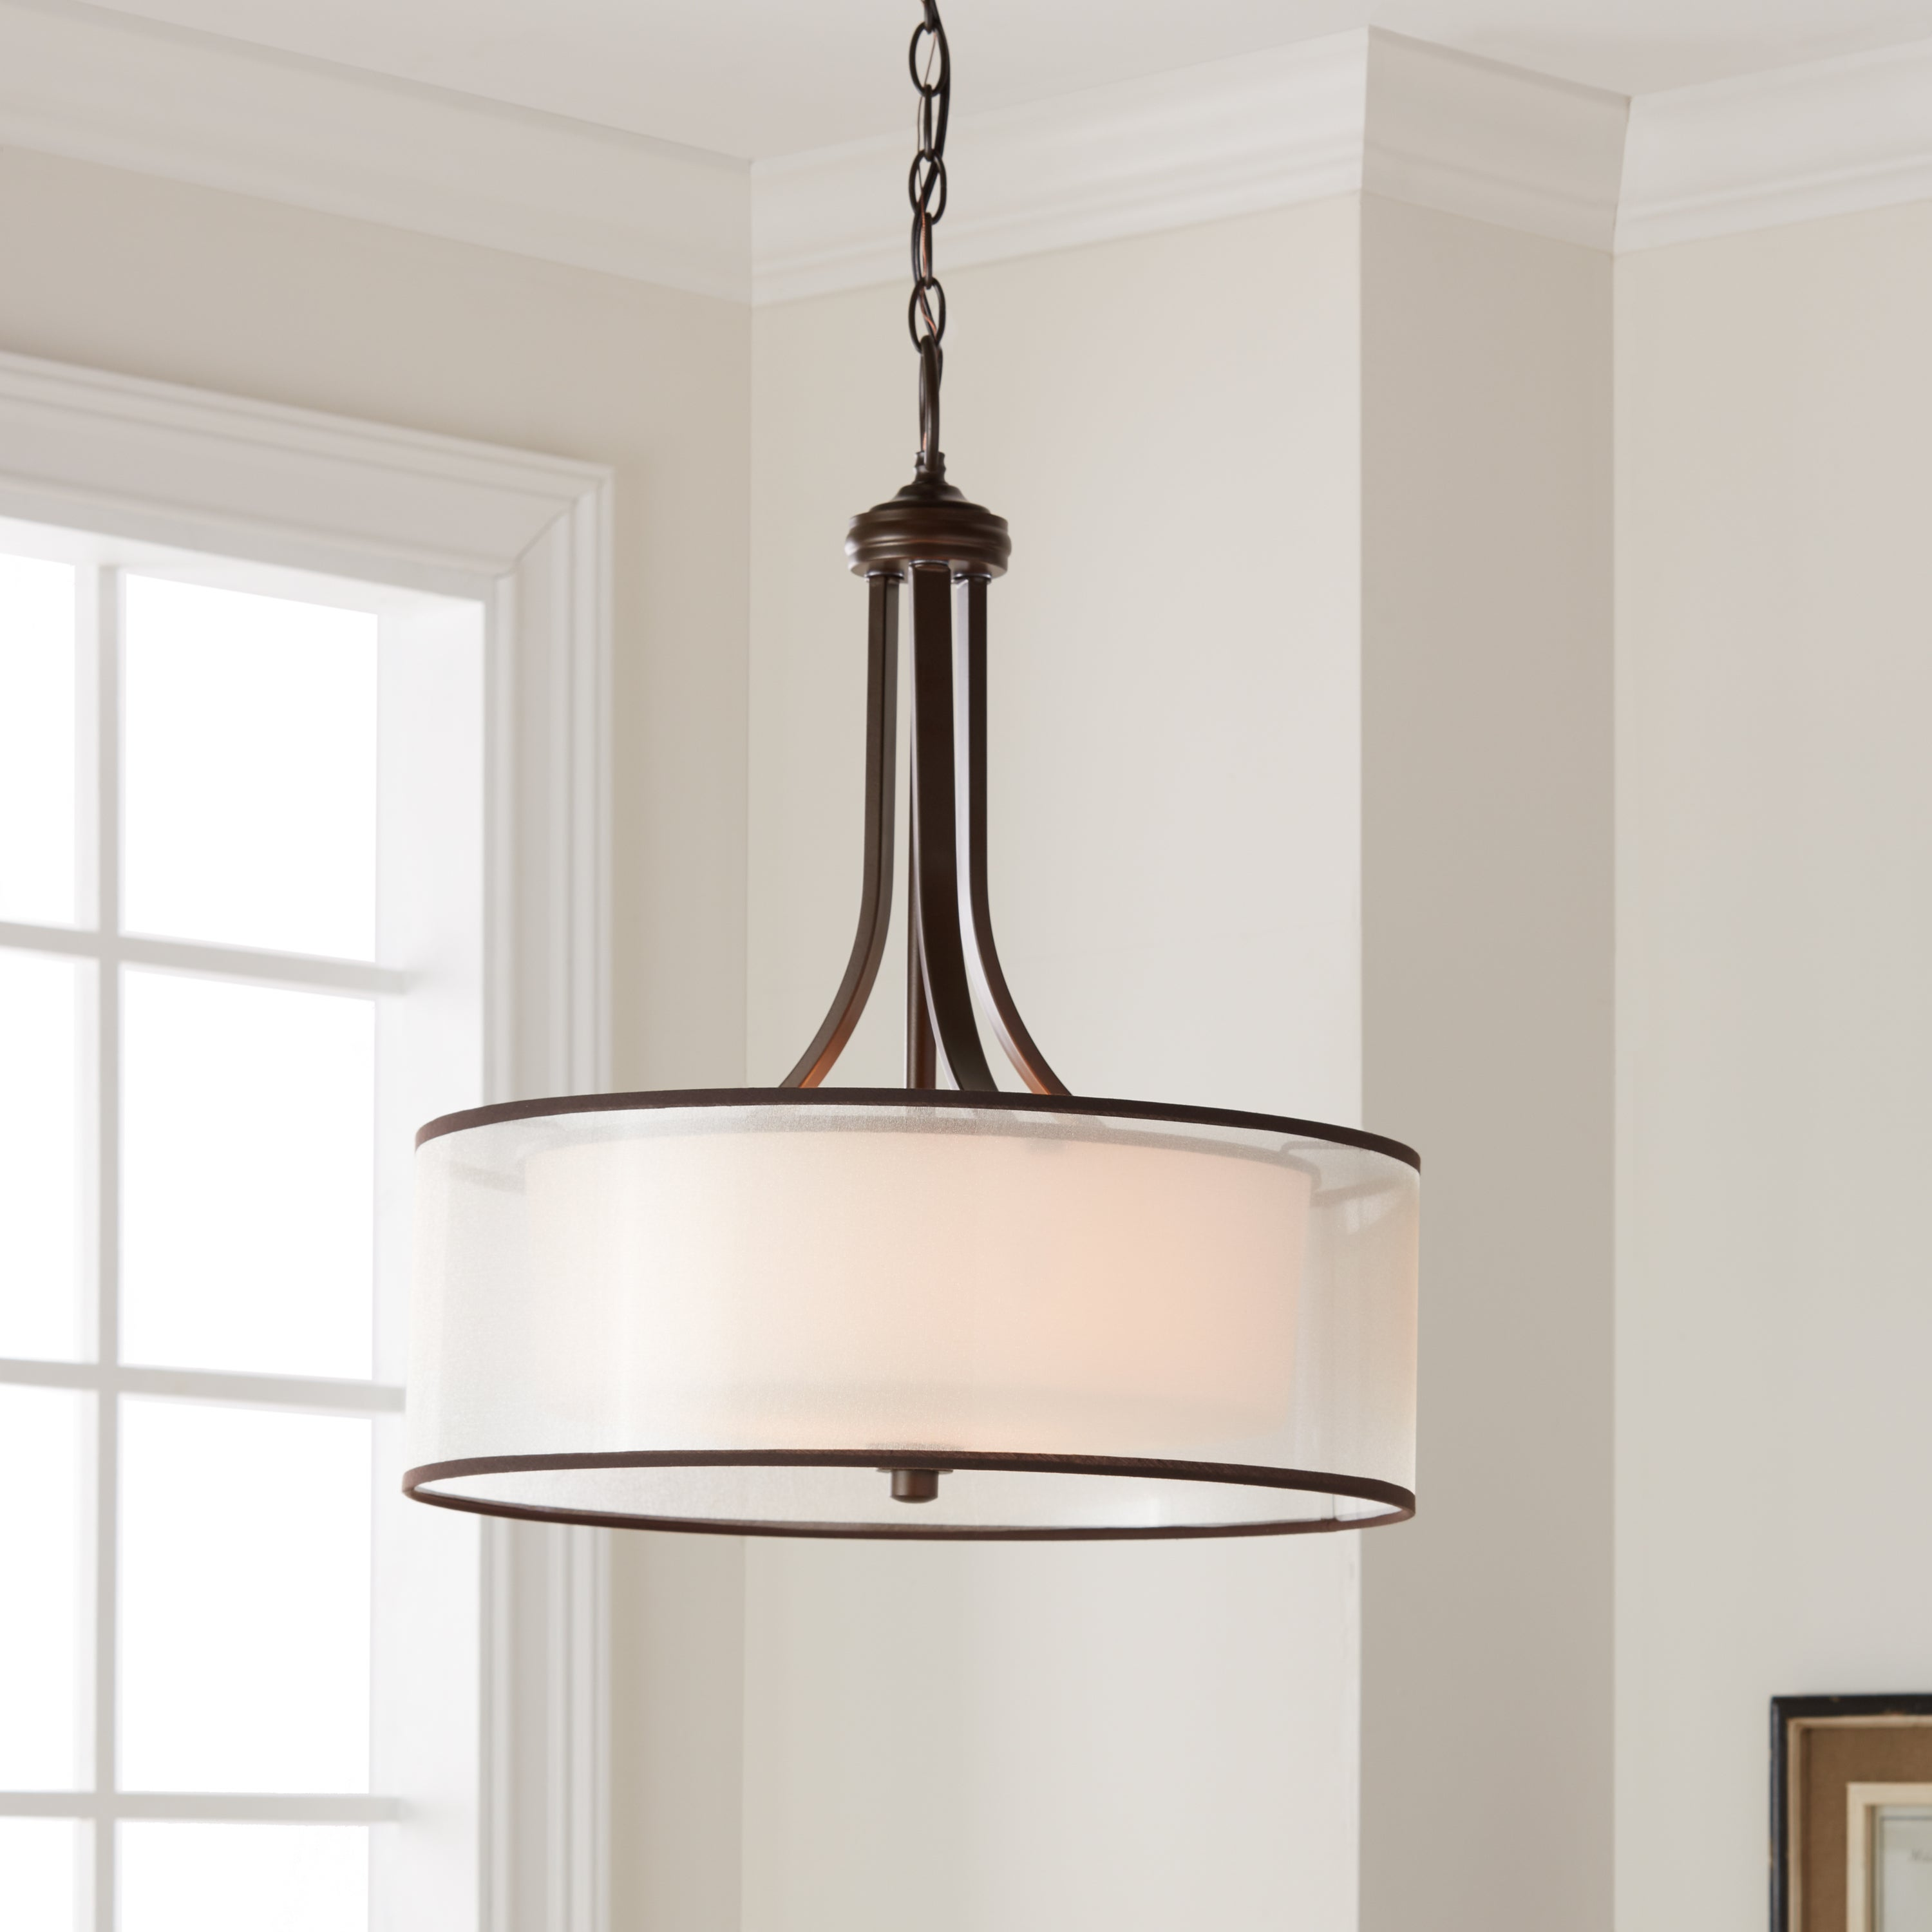 Kichler Lighting Lacey Collection 4 Light Mission Bronze Pendant